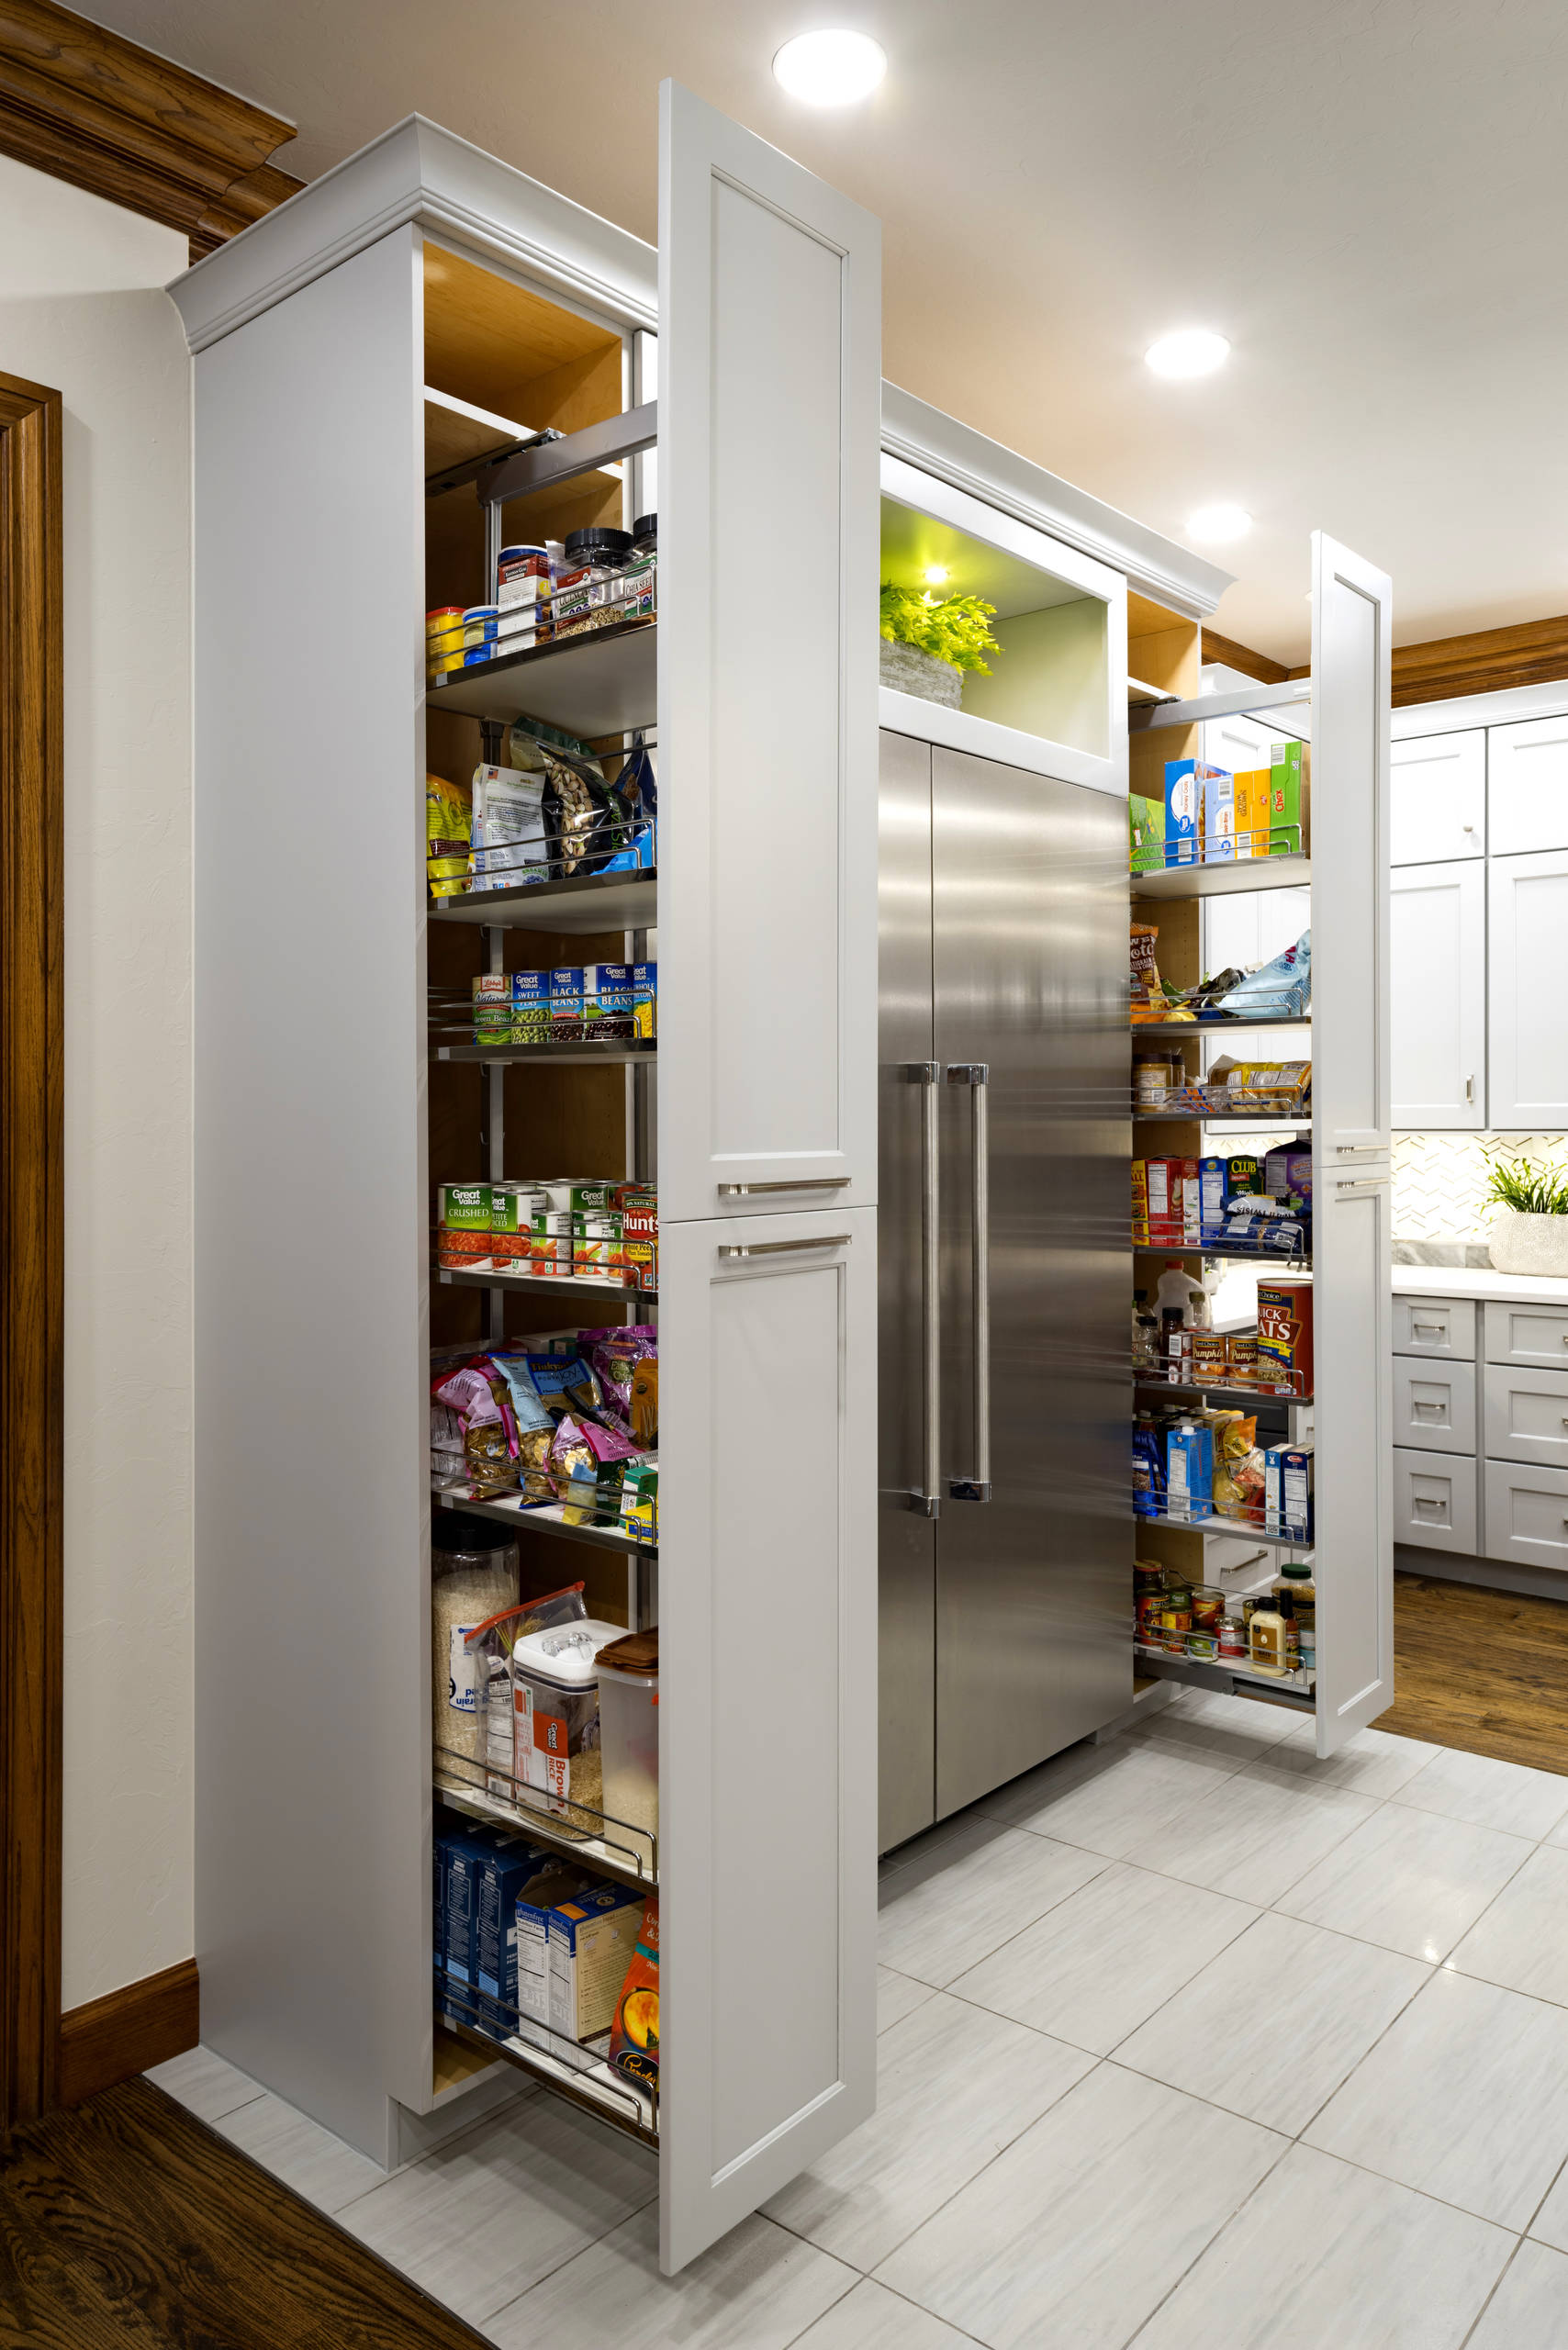 75 Beautiful Kitchen Pantry Pictures Ideas February 2021 Houzz